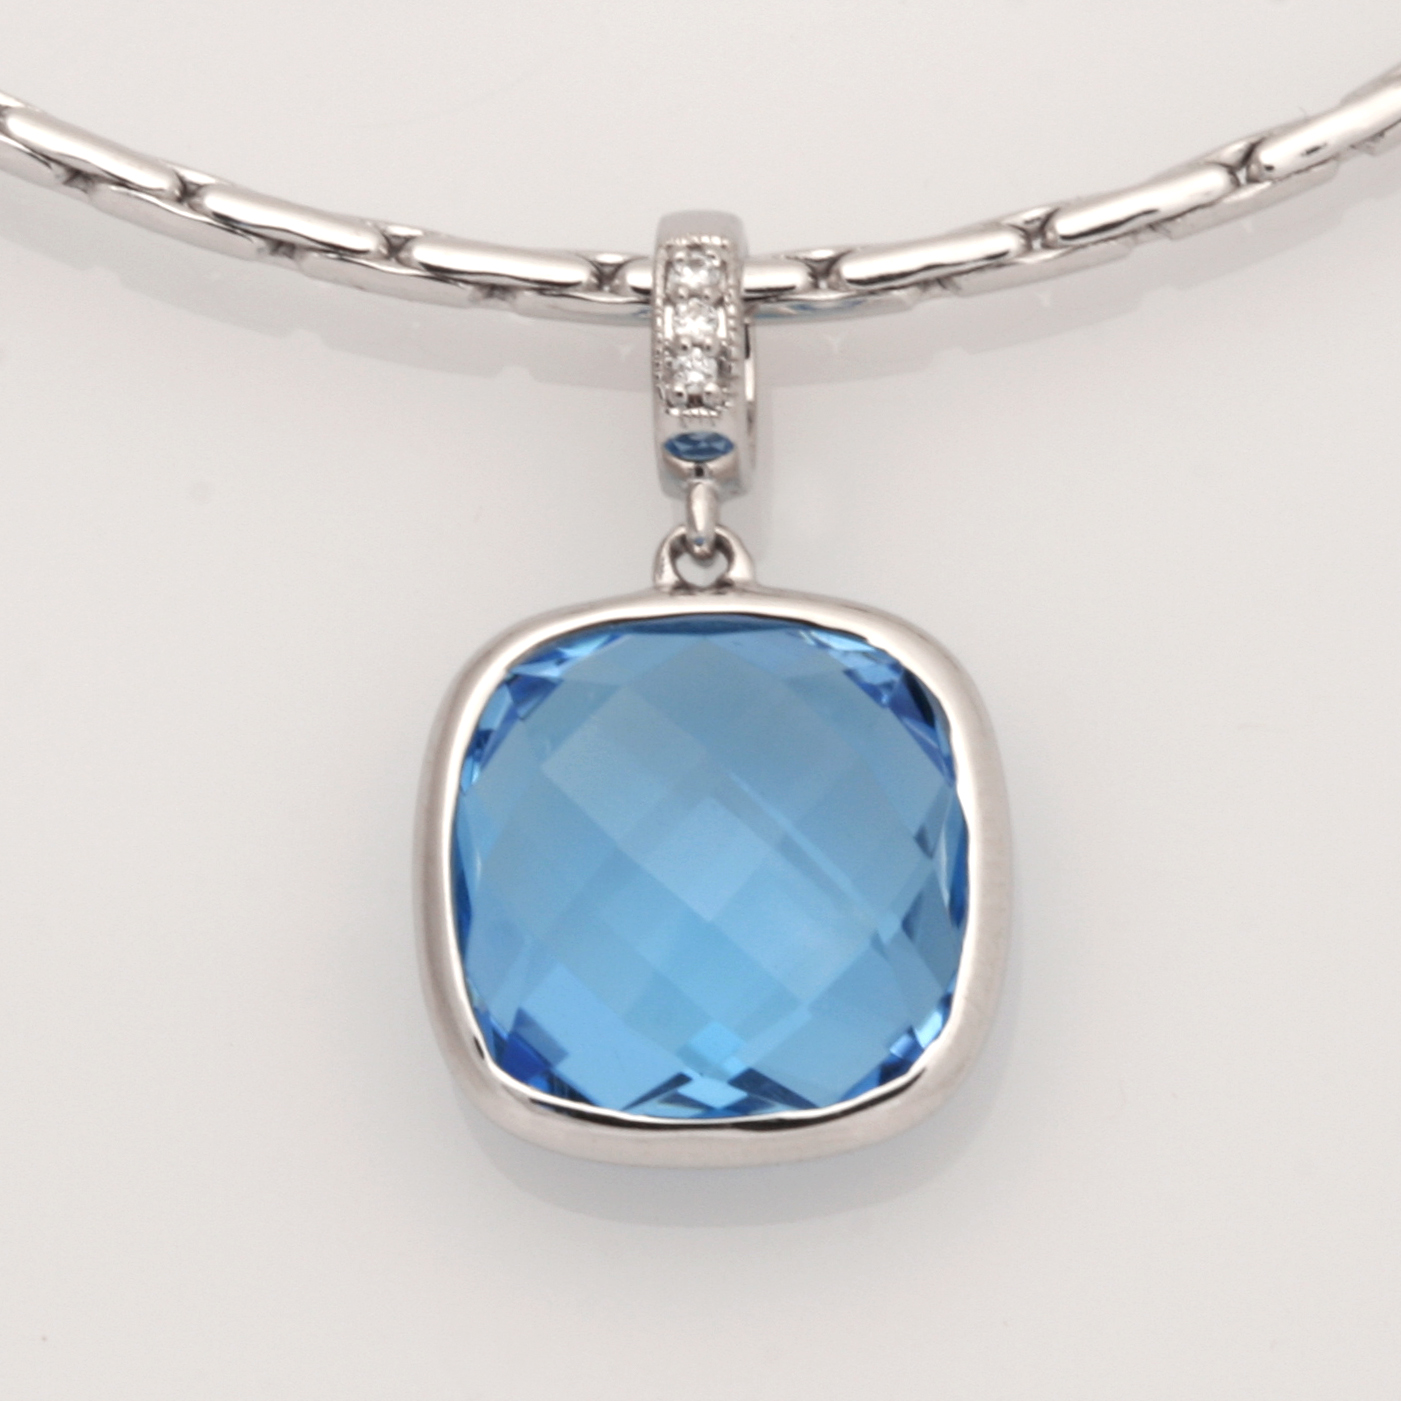 P110 – 9ct WG checkerboard 12mm cushion blue topaz pendant with diamond set bail 3=0.01cts $690